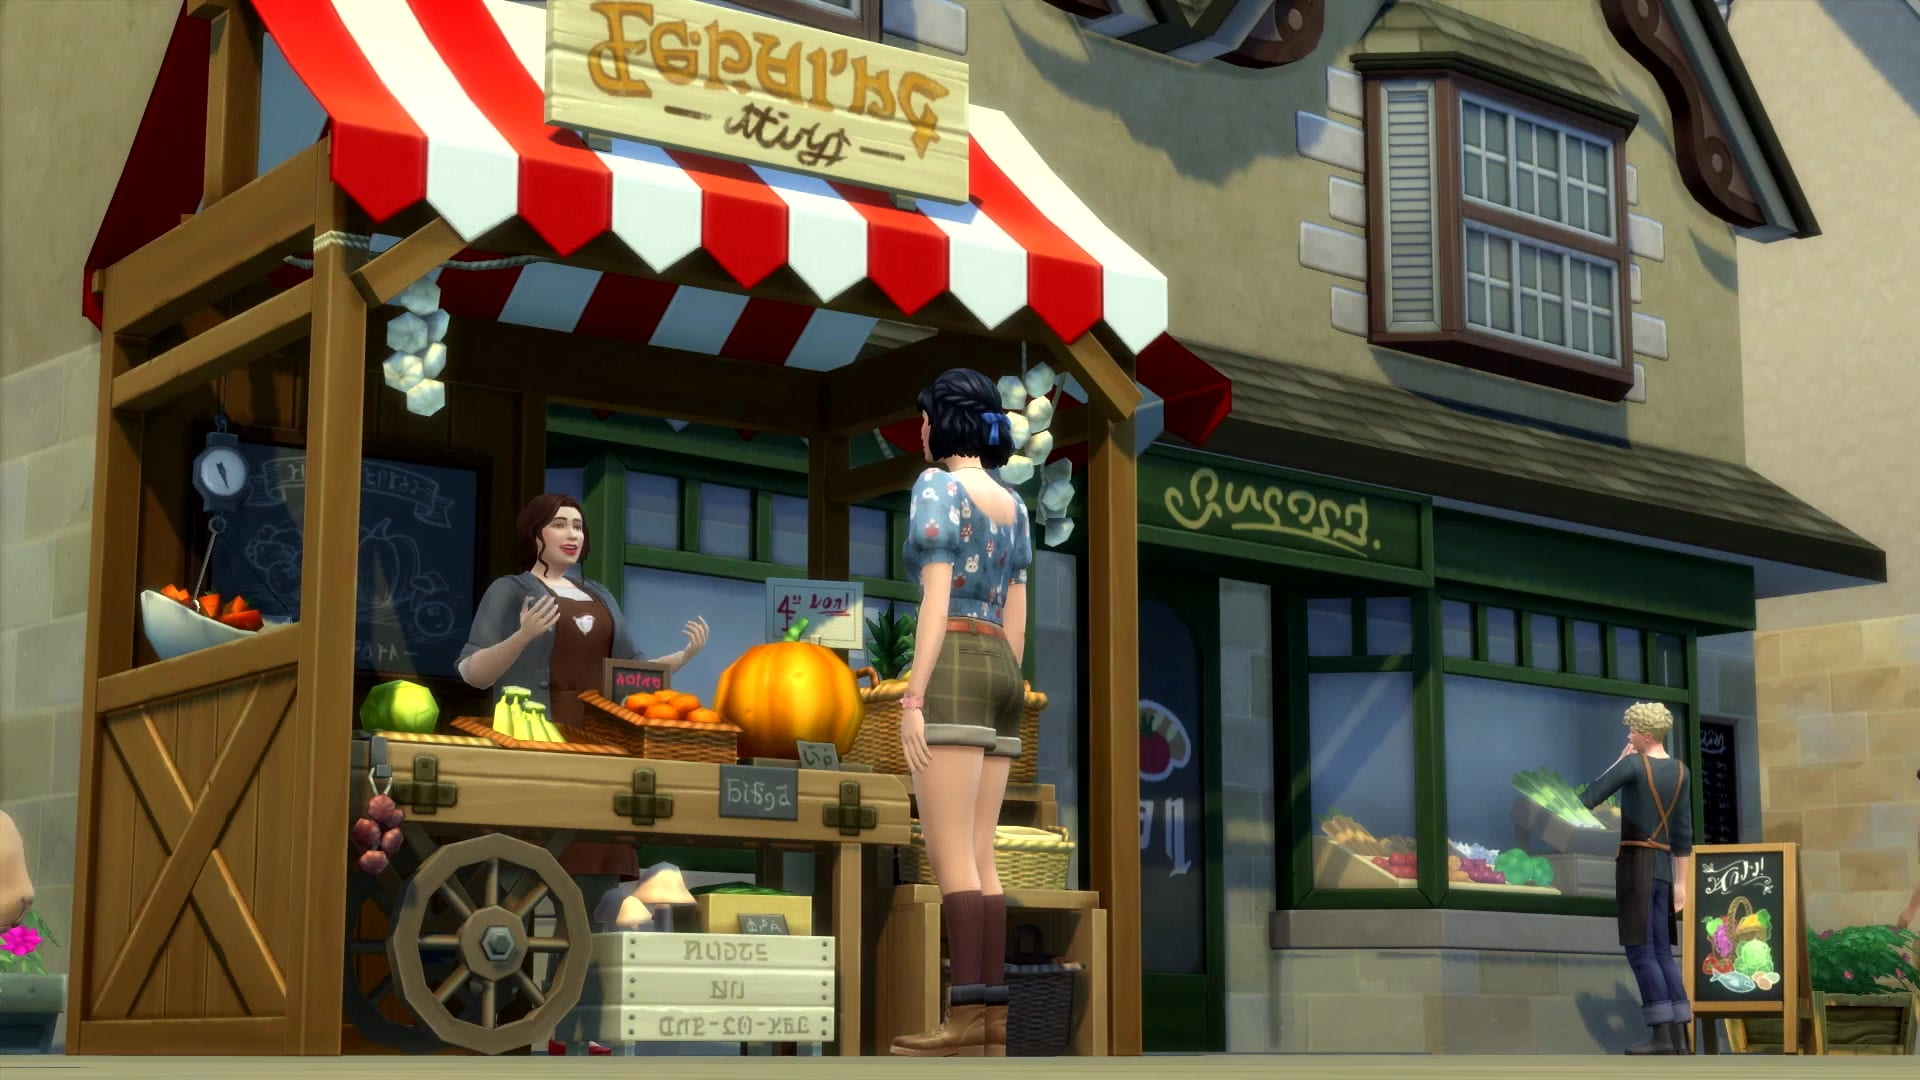 Sims 4 Cottage Living Release Date, Trailer, And Everything About The New Expansion